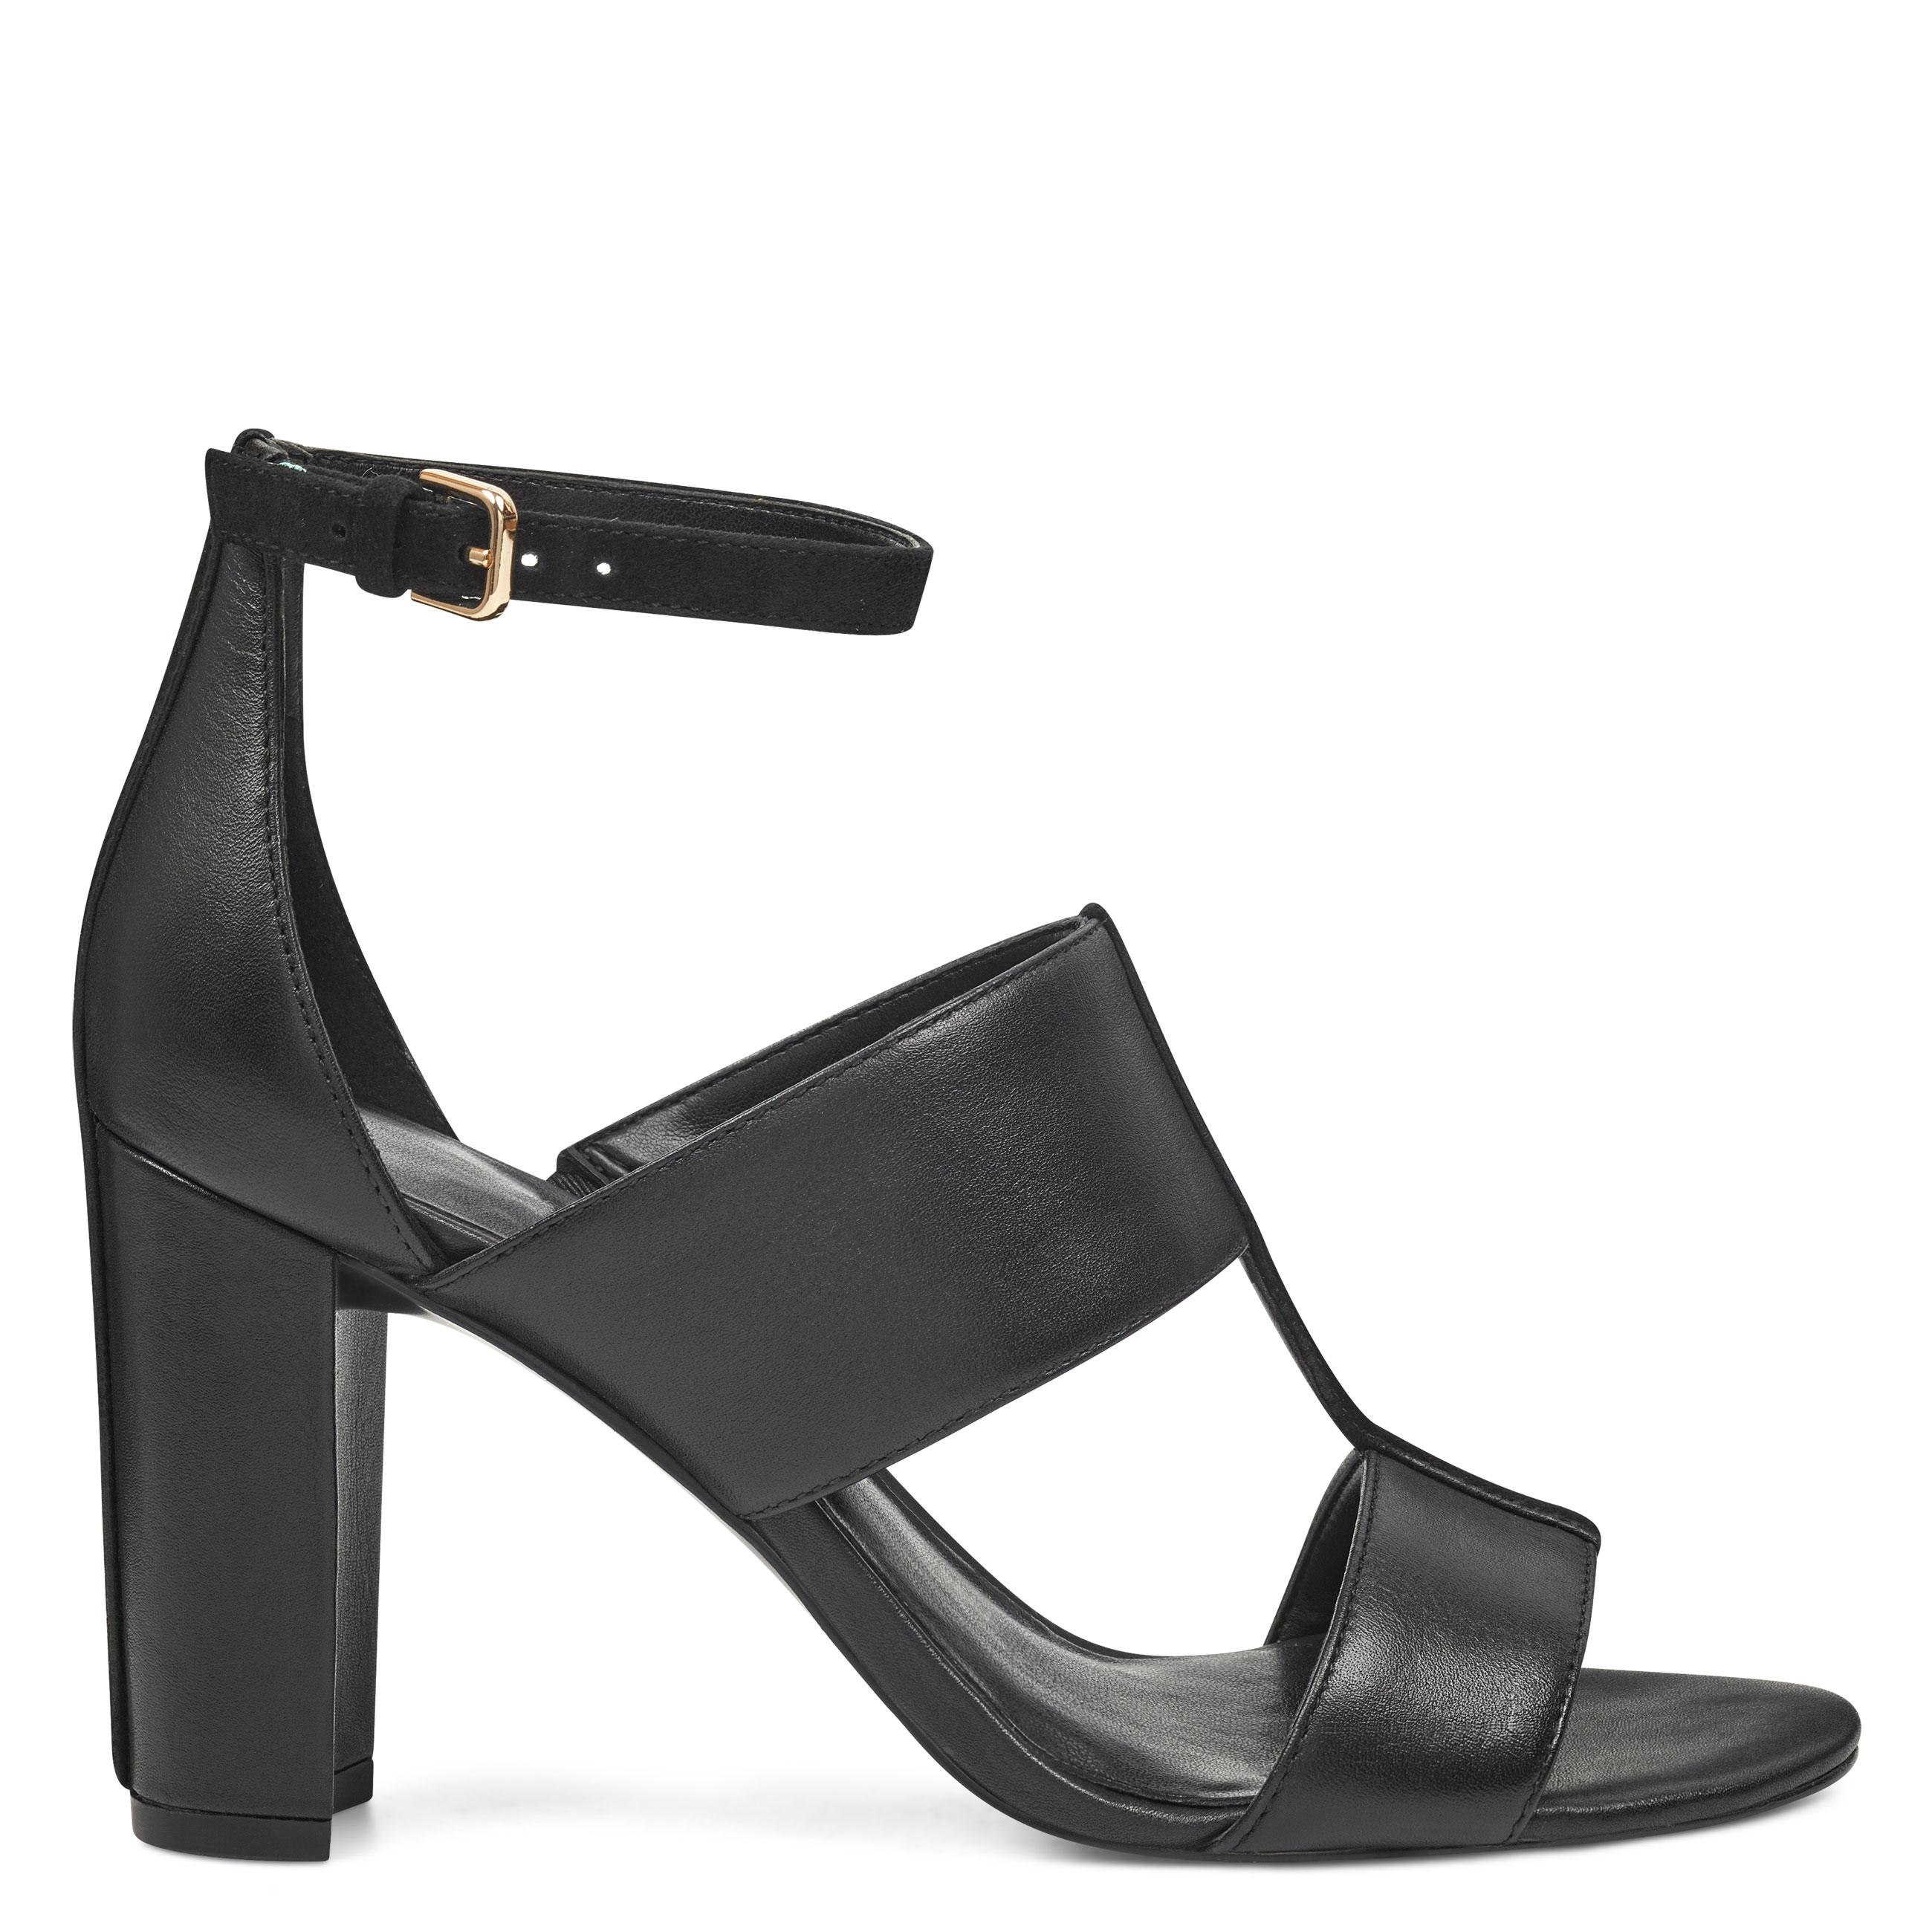 cc53e36375bb Lyst - Nine West Nohea Open Toe Sandals in Black